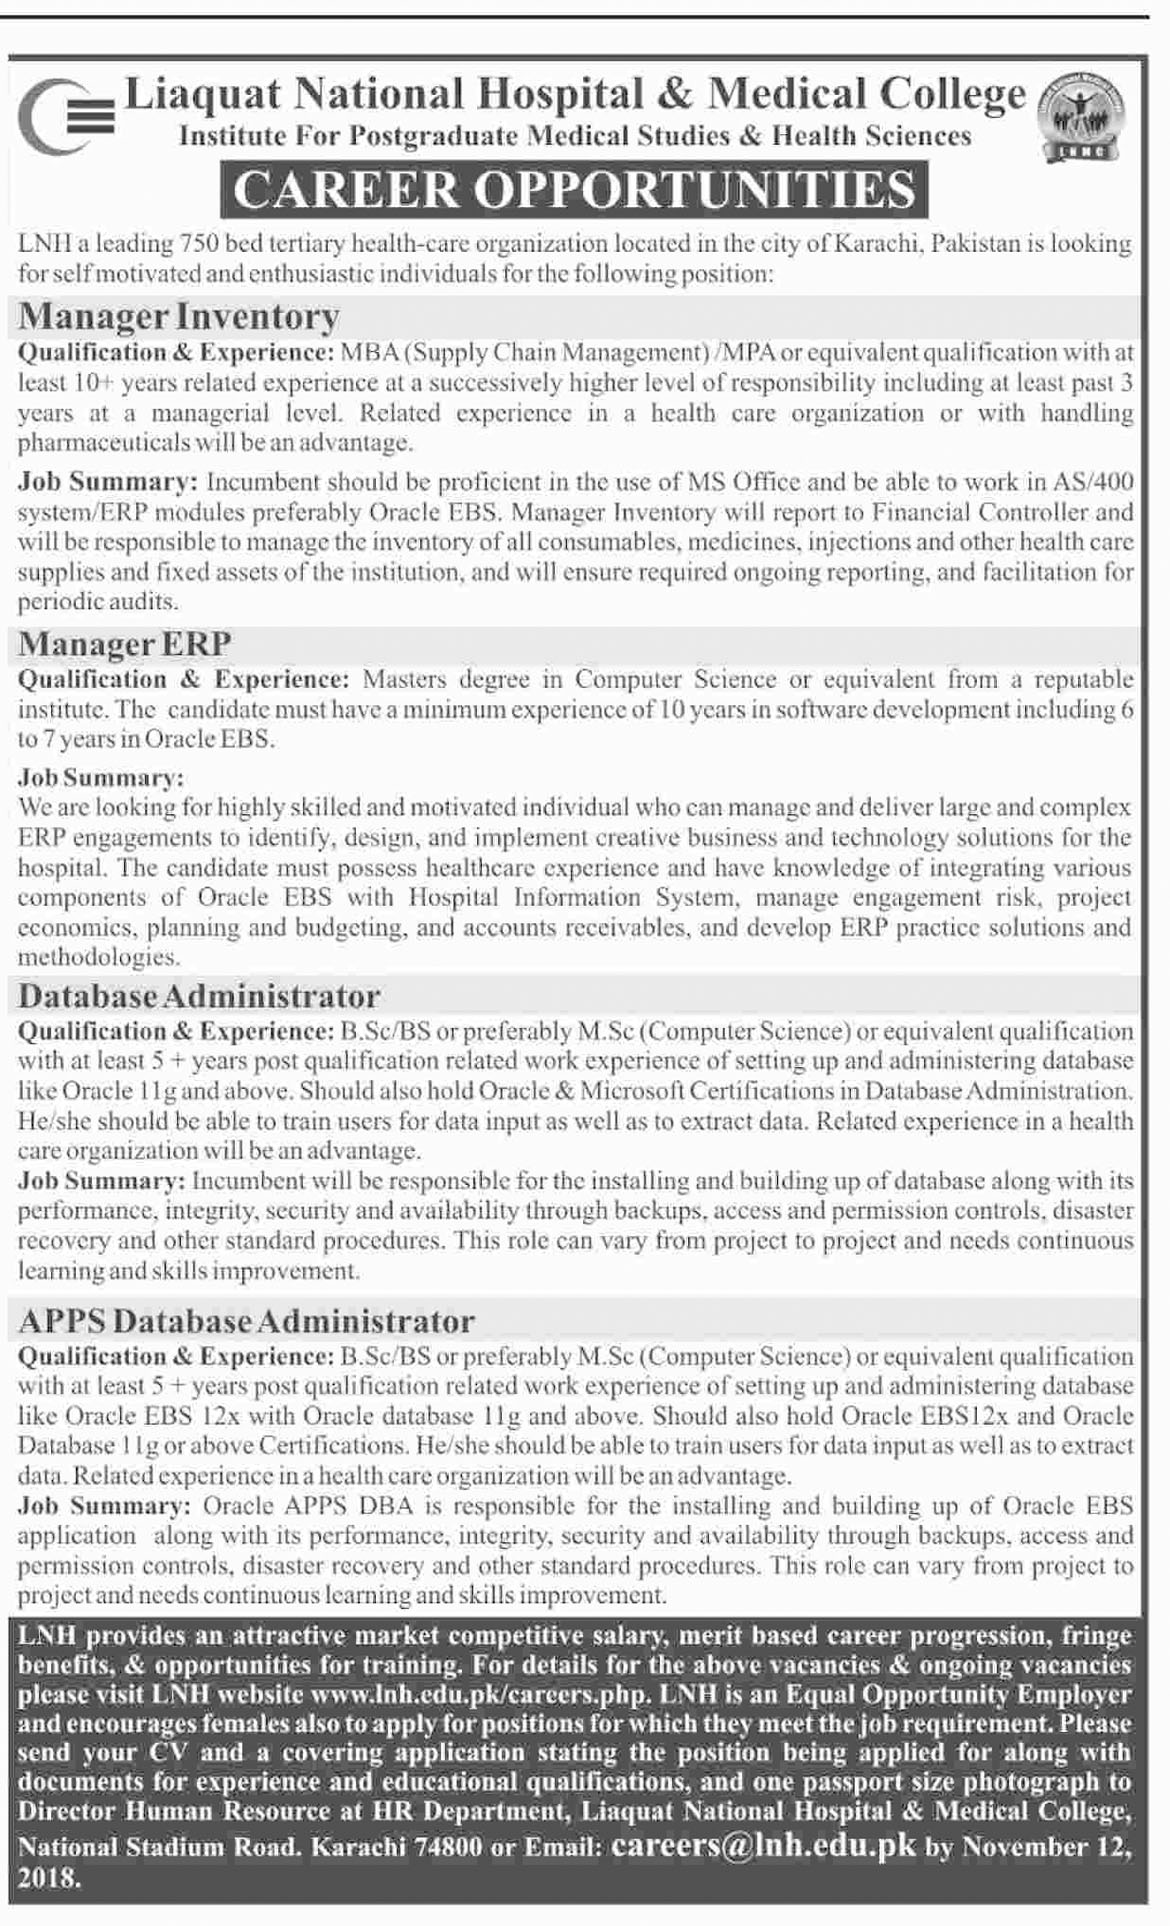 Jobs In Liaquat National Hospital And Medical College 05 Nov 2018